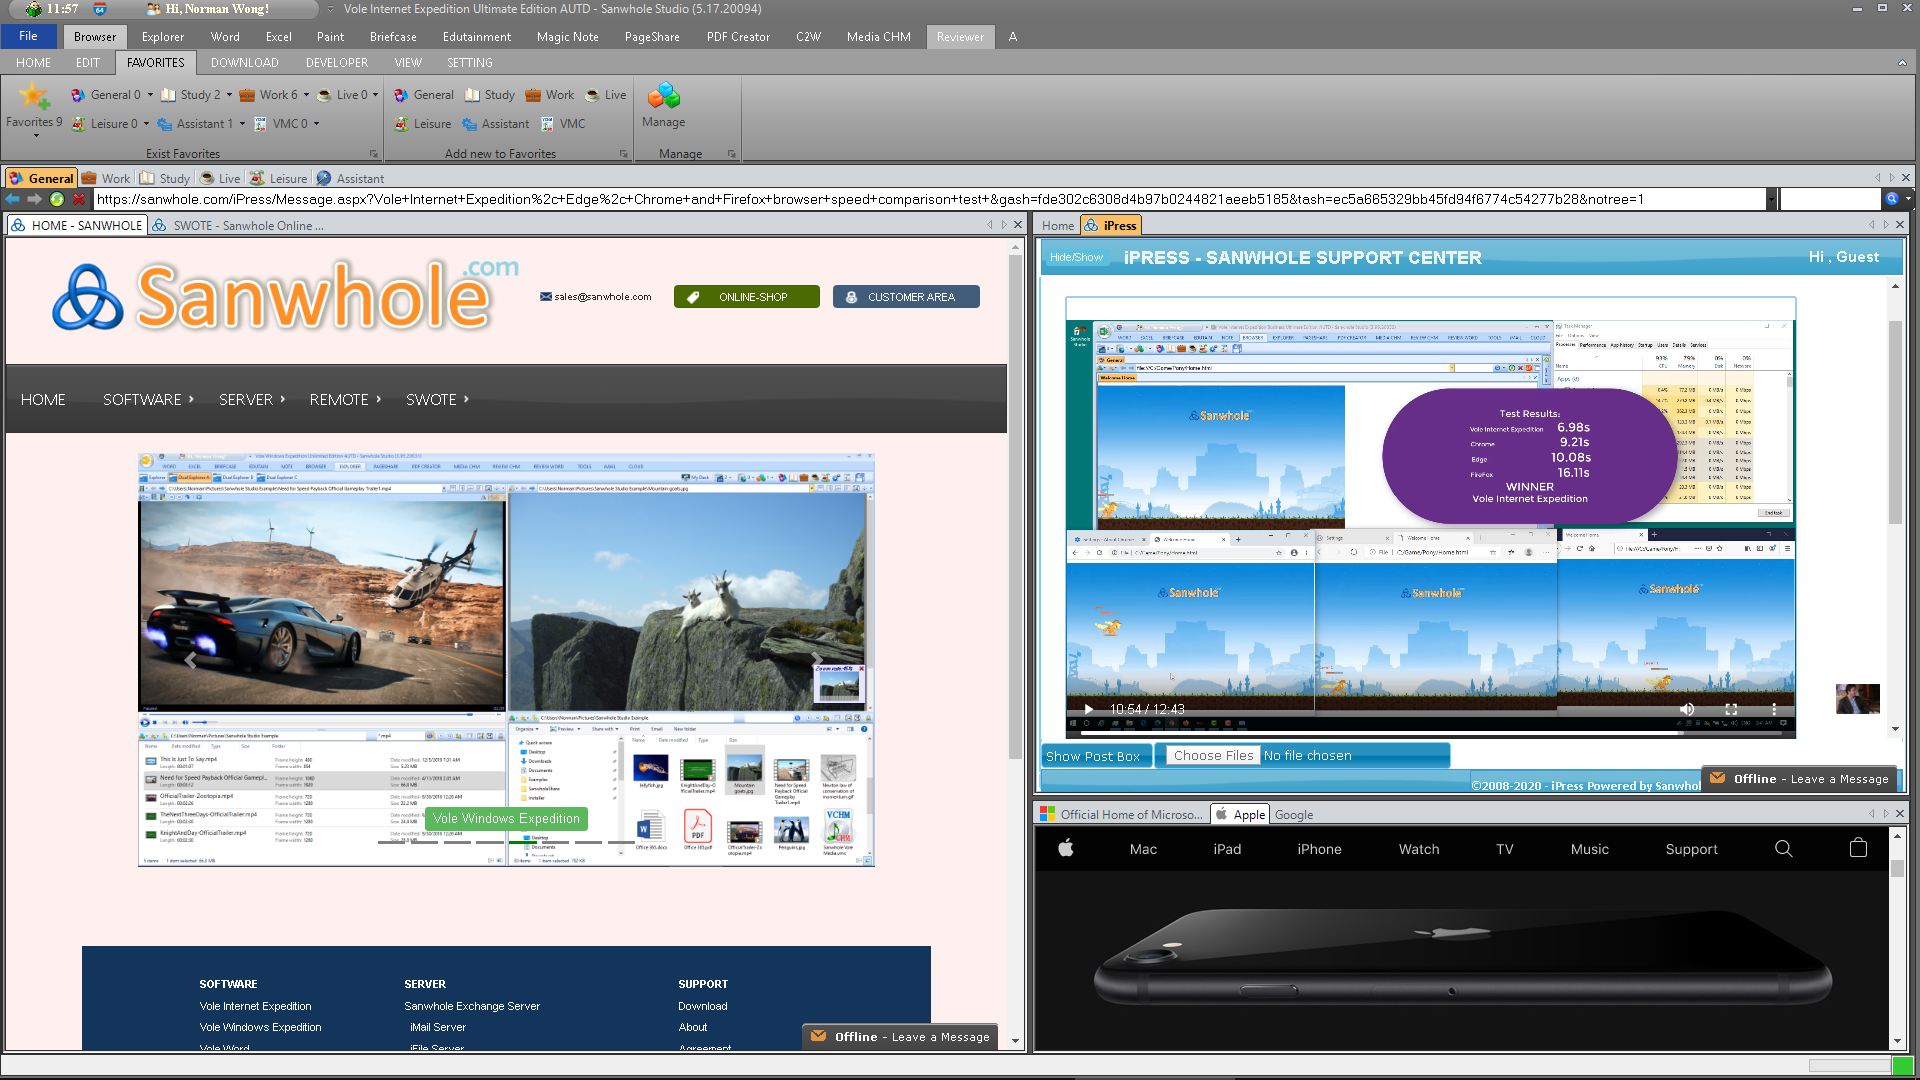 Vole Internet Expedition Professional Edition, Network Software Screenshot